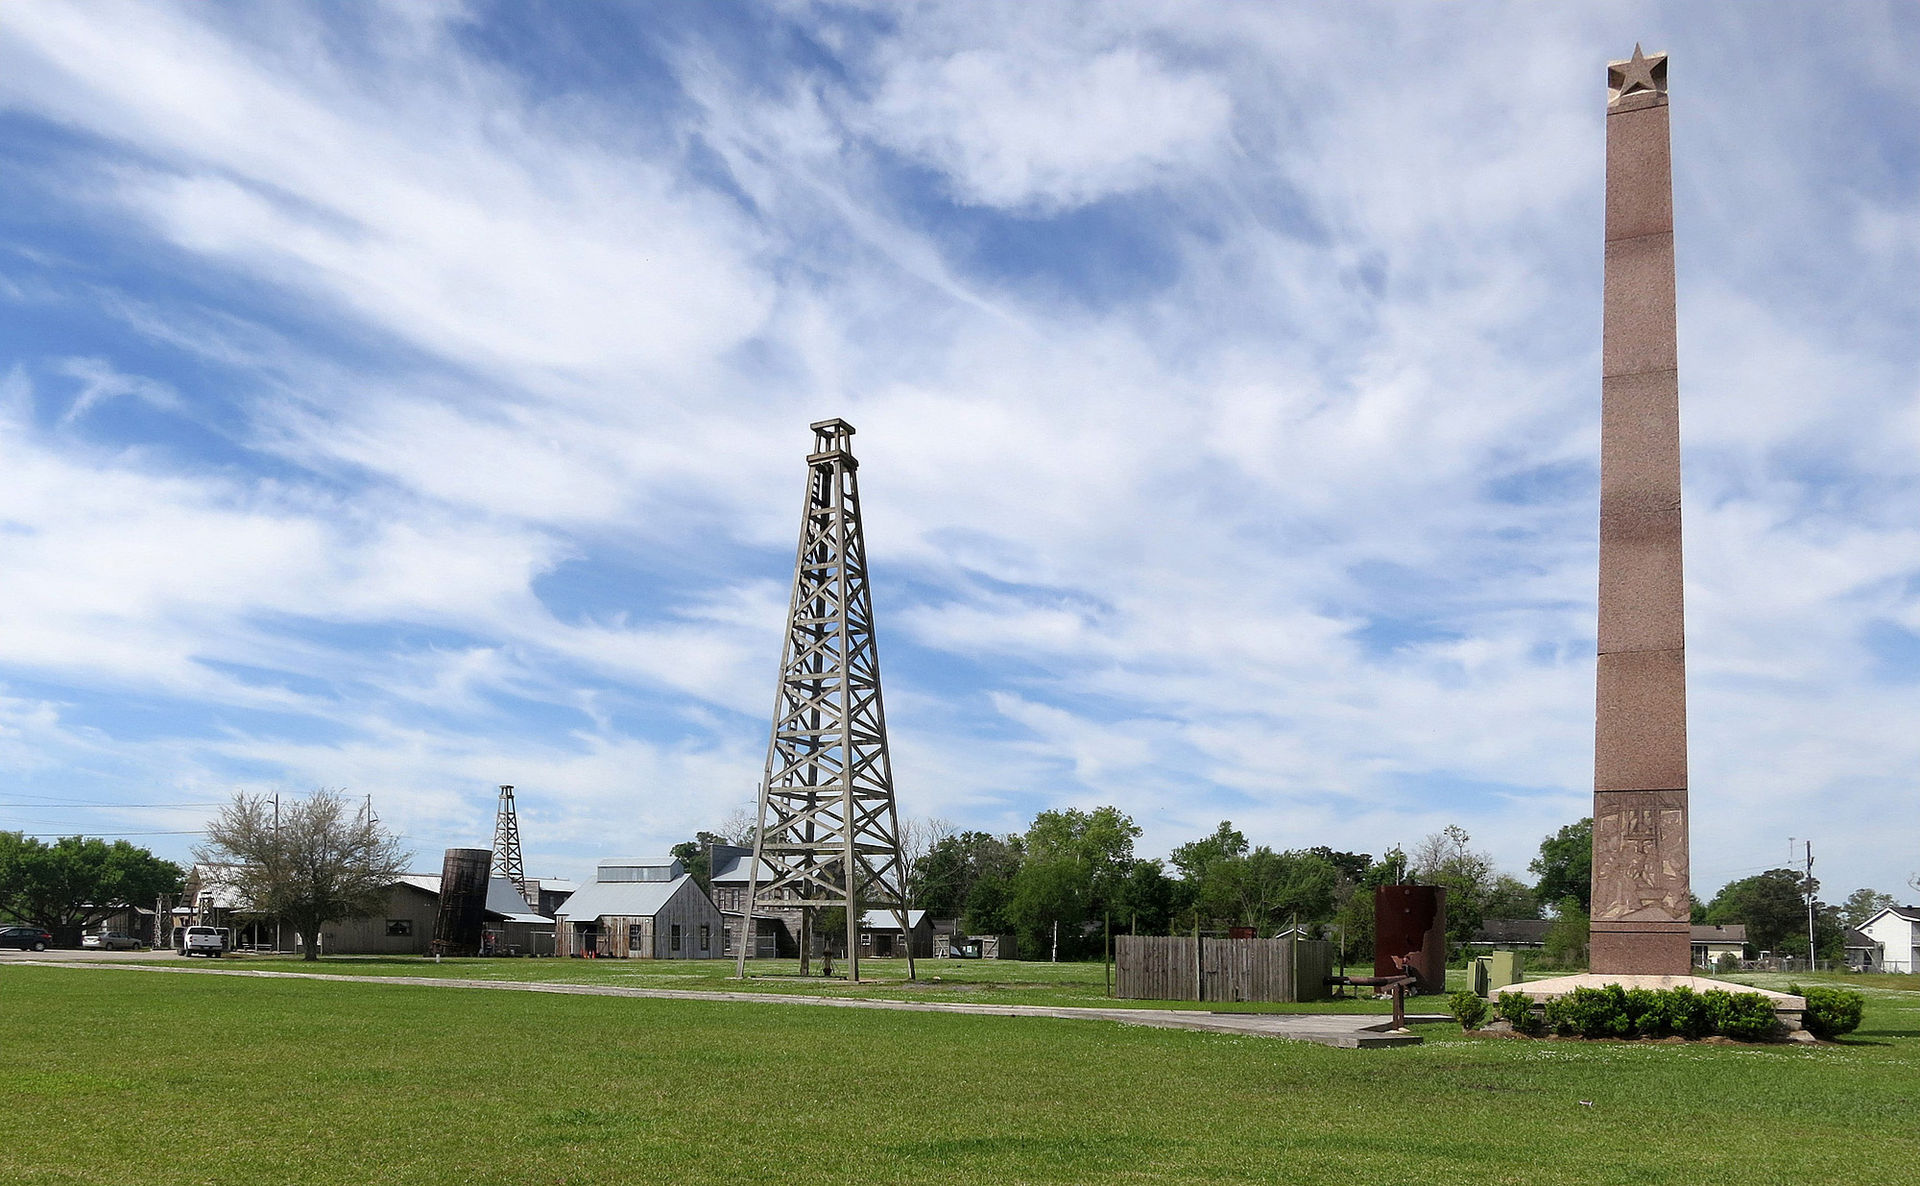 The Spindletop-Gladys City Boomtown Museum opened in 1976.